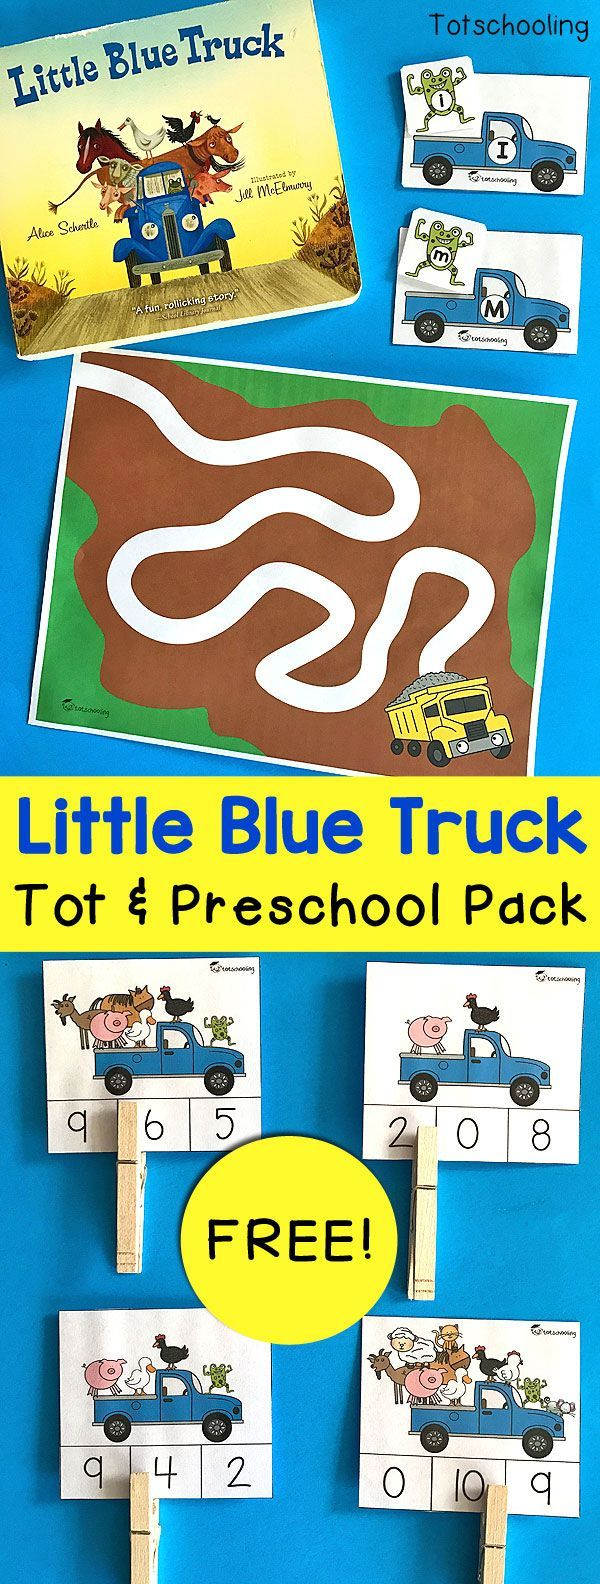 Free Little Blue Truck Printable Learning Pack For Toddlers And Preschoolers To Go Along With Th Little Blue Trucks Transportation Preschool Toddler Activities